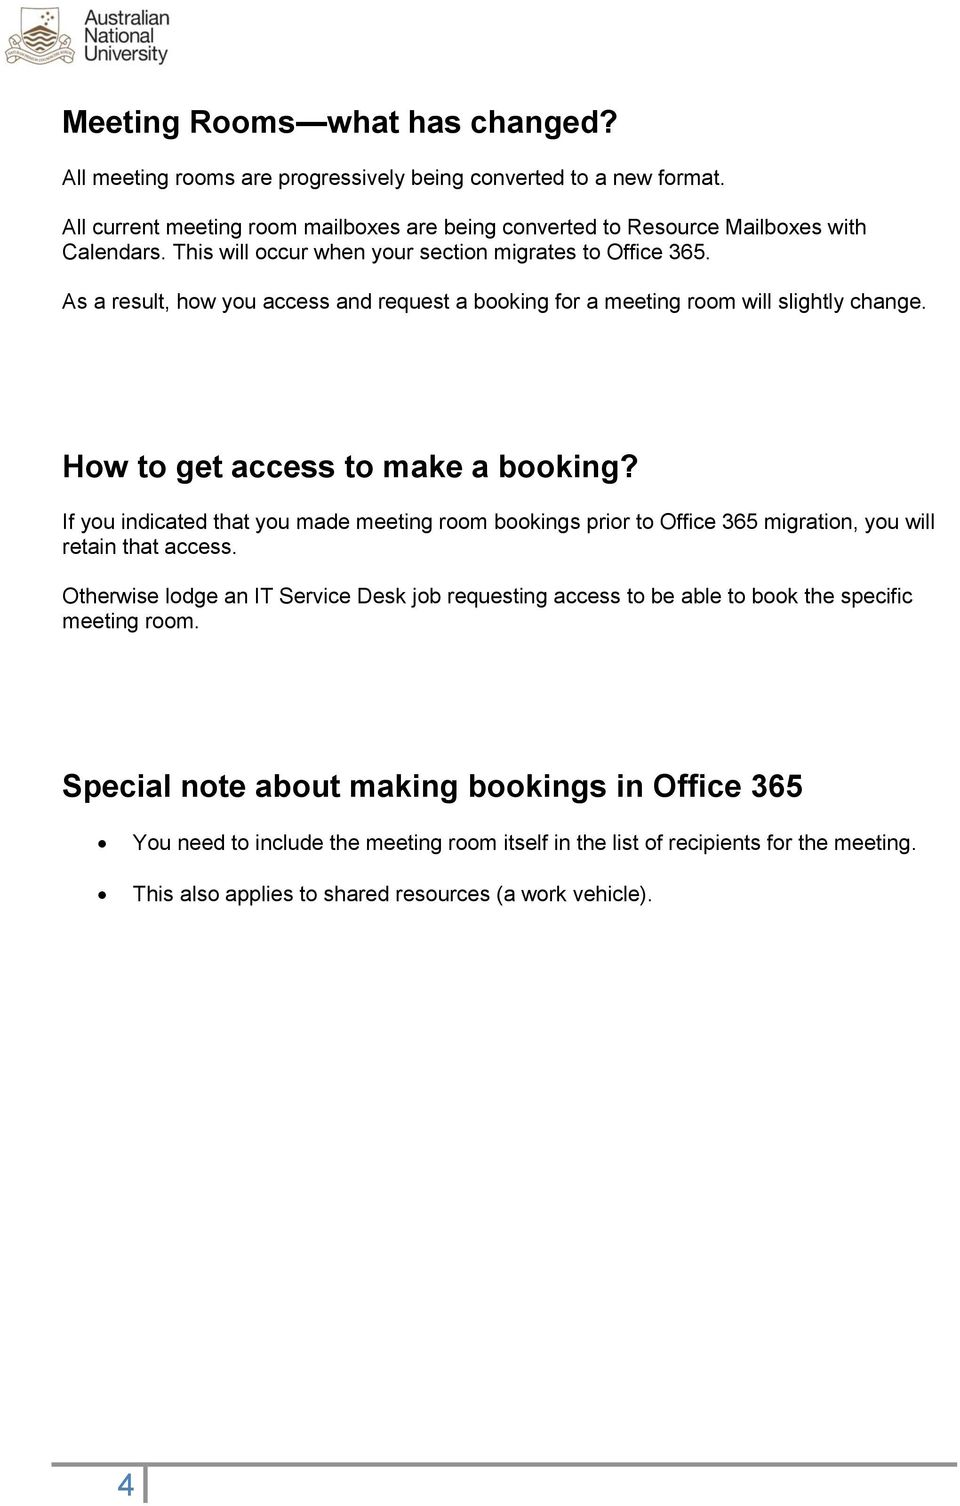 If you indicated that you made meeting room bookings prior to Office 365 migration, you will retain that access.